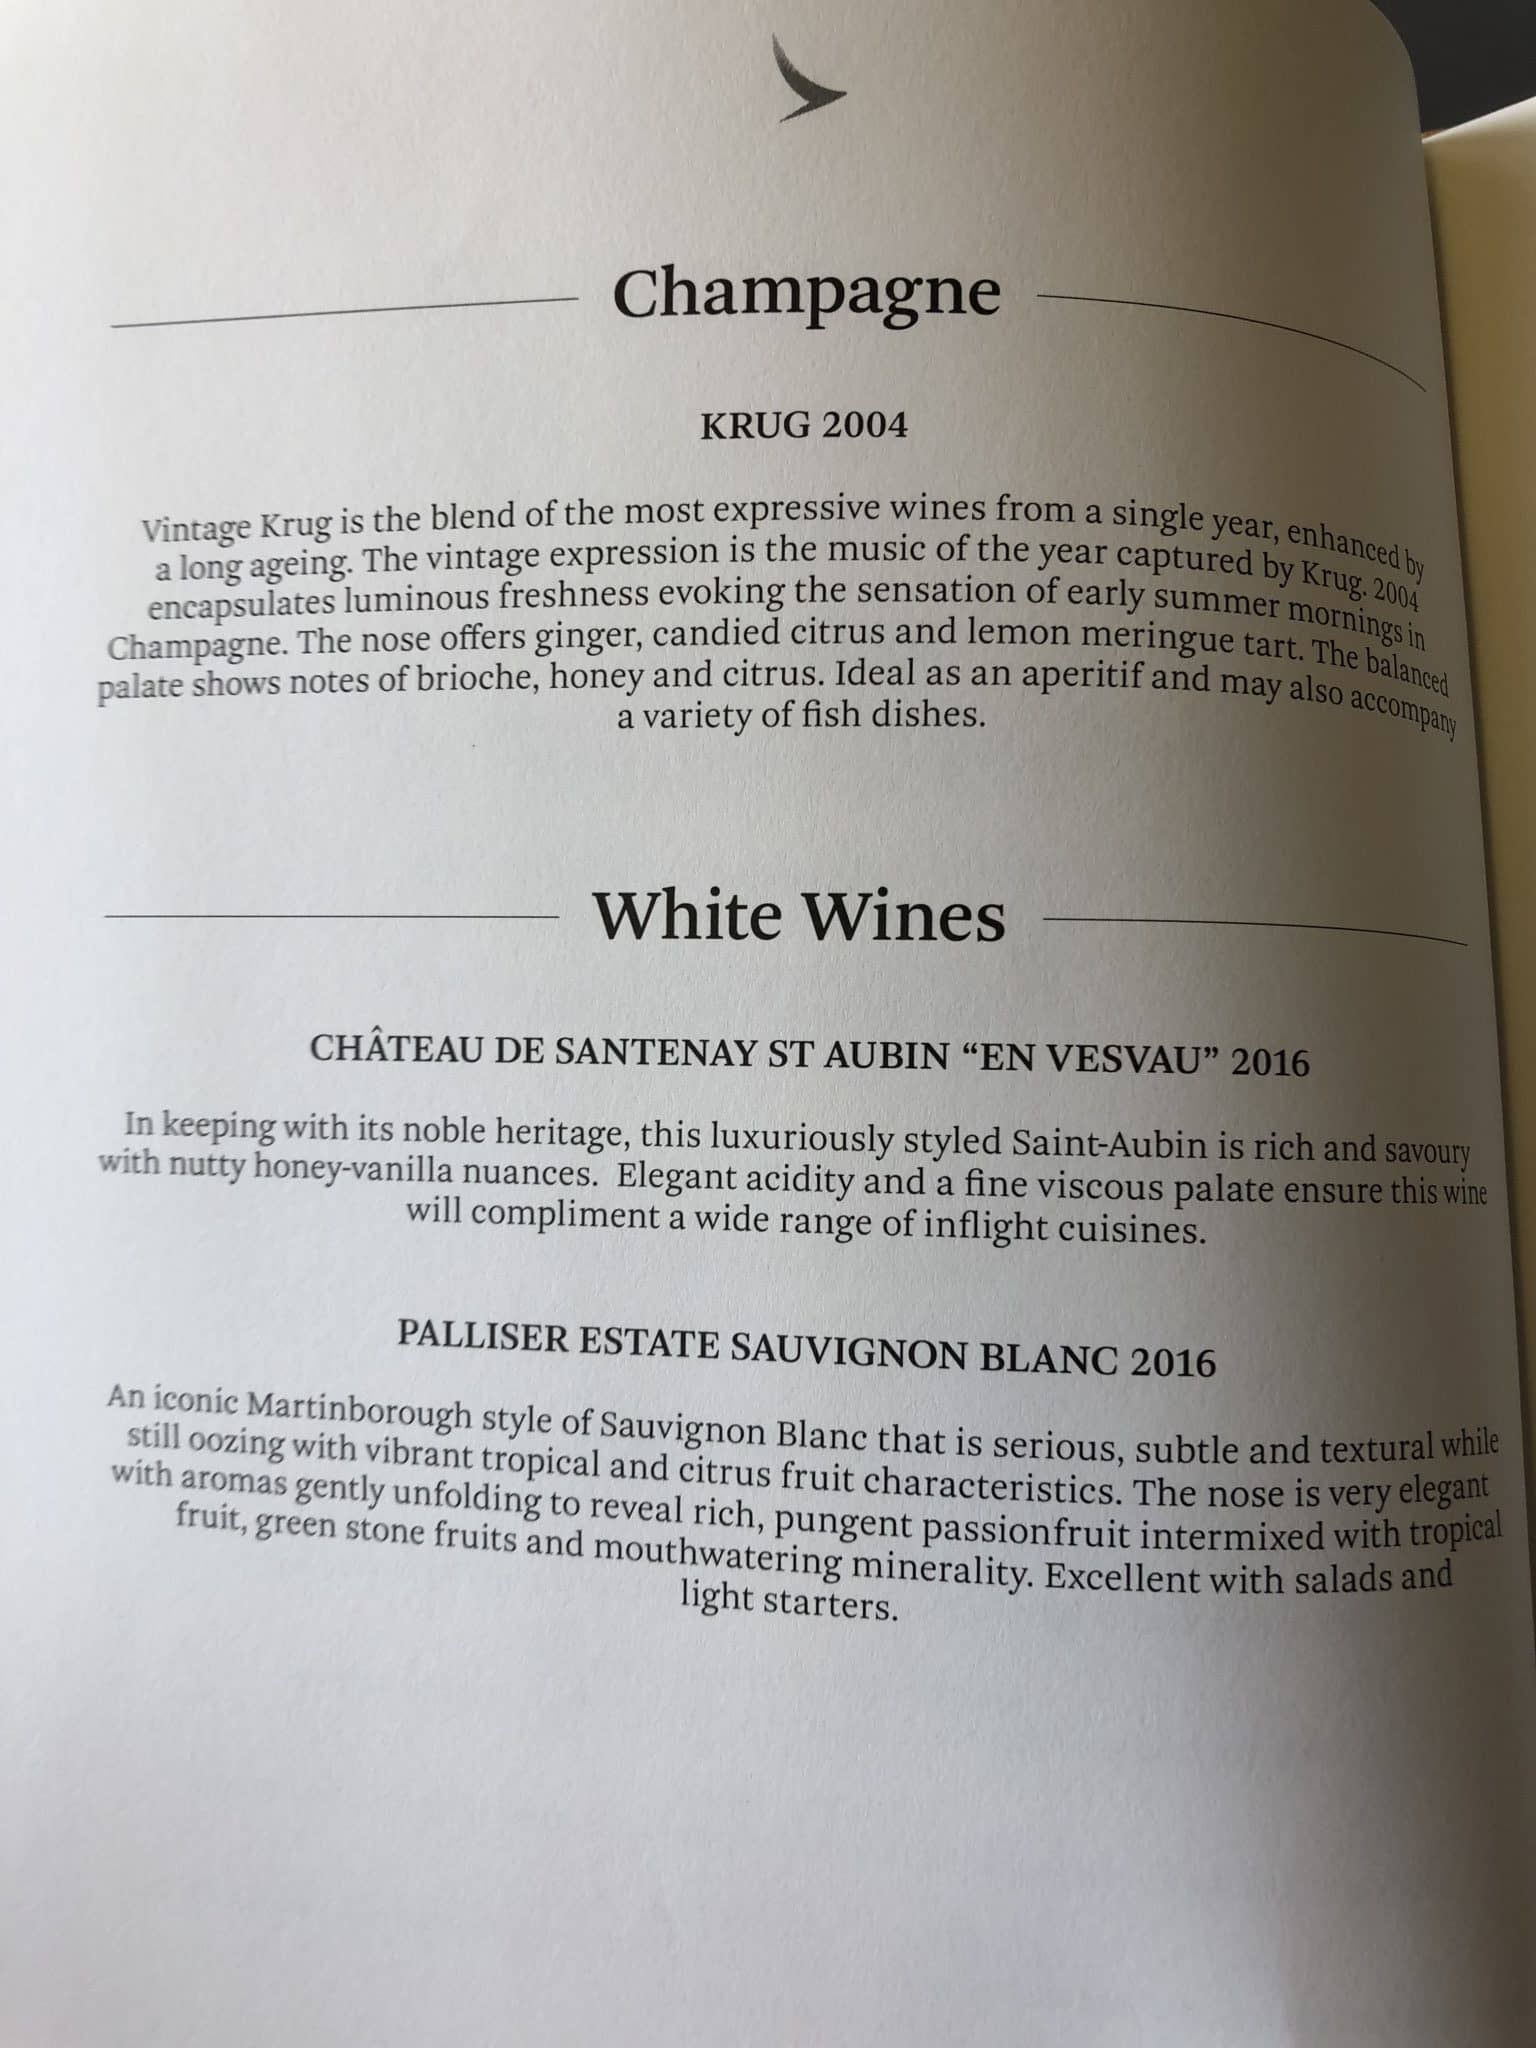 Cathay Pacific First Class Boeing 777-300 Champagner und Wein